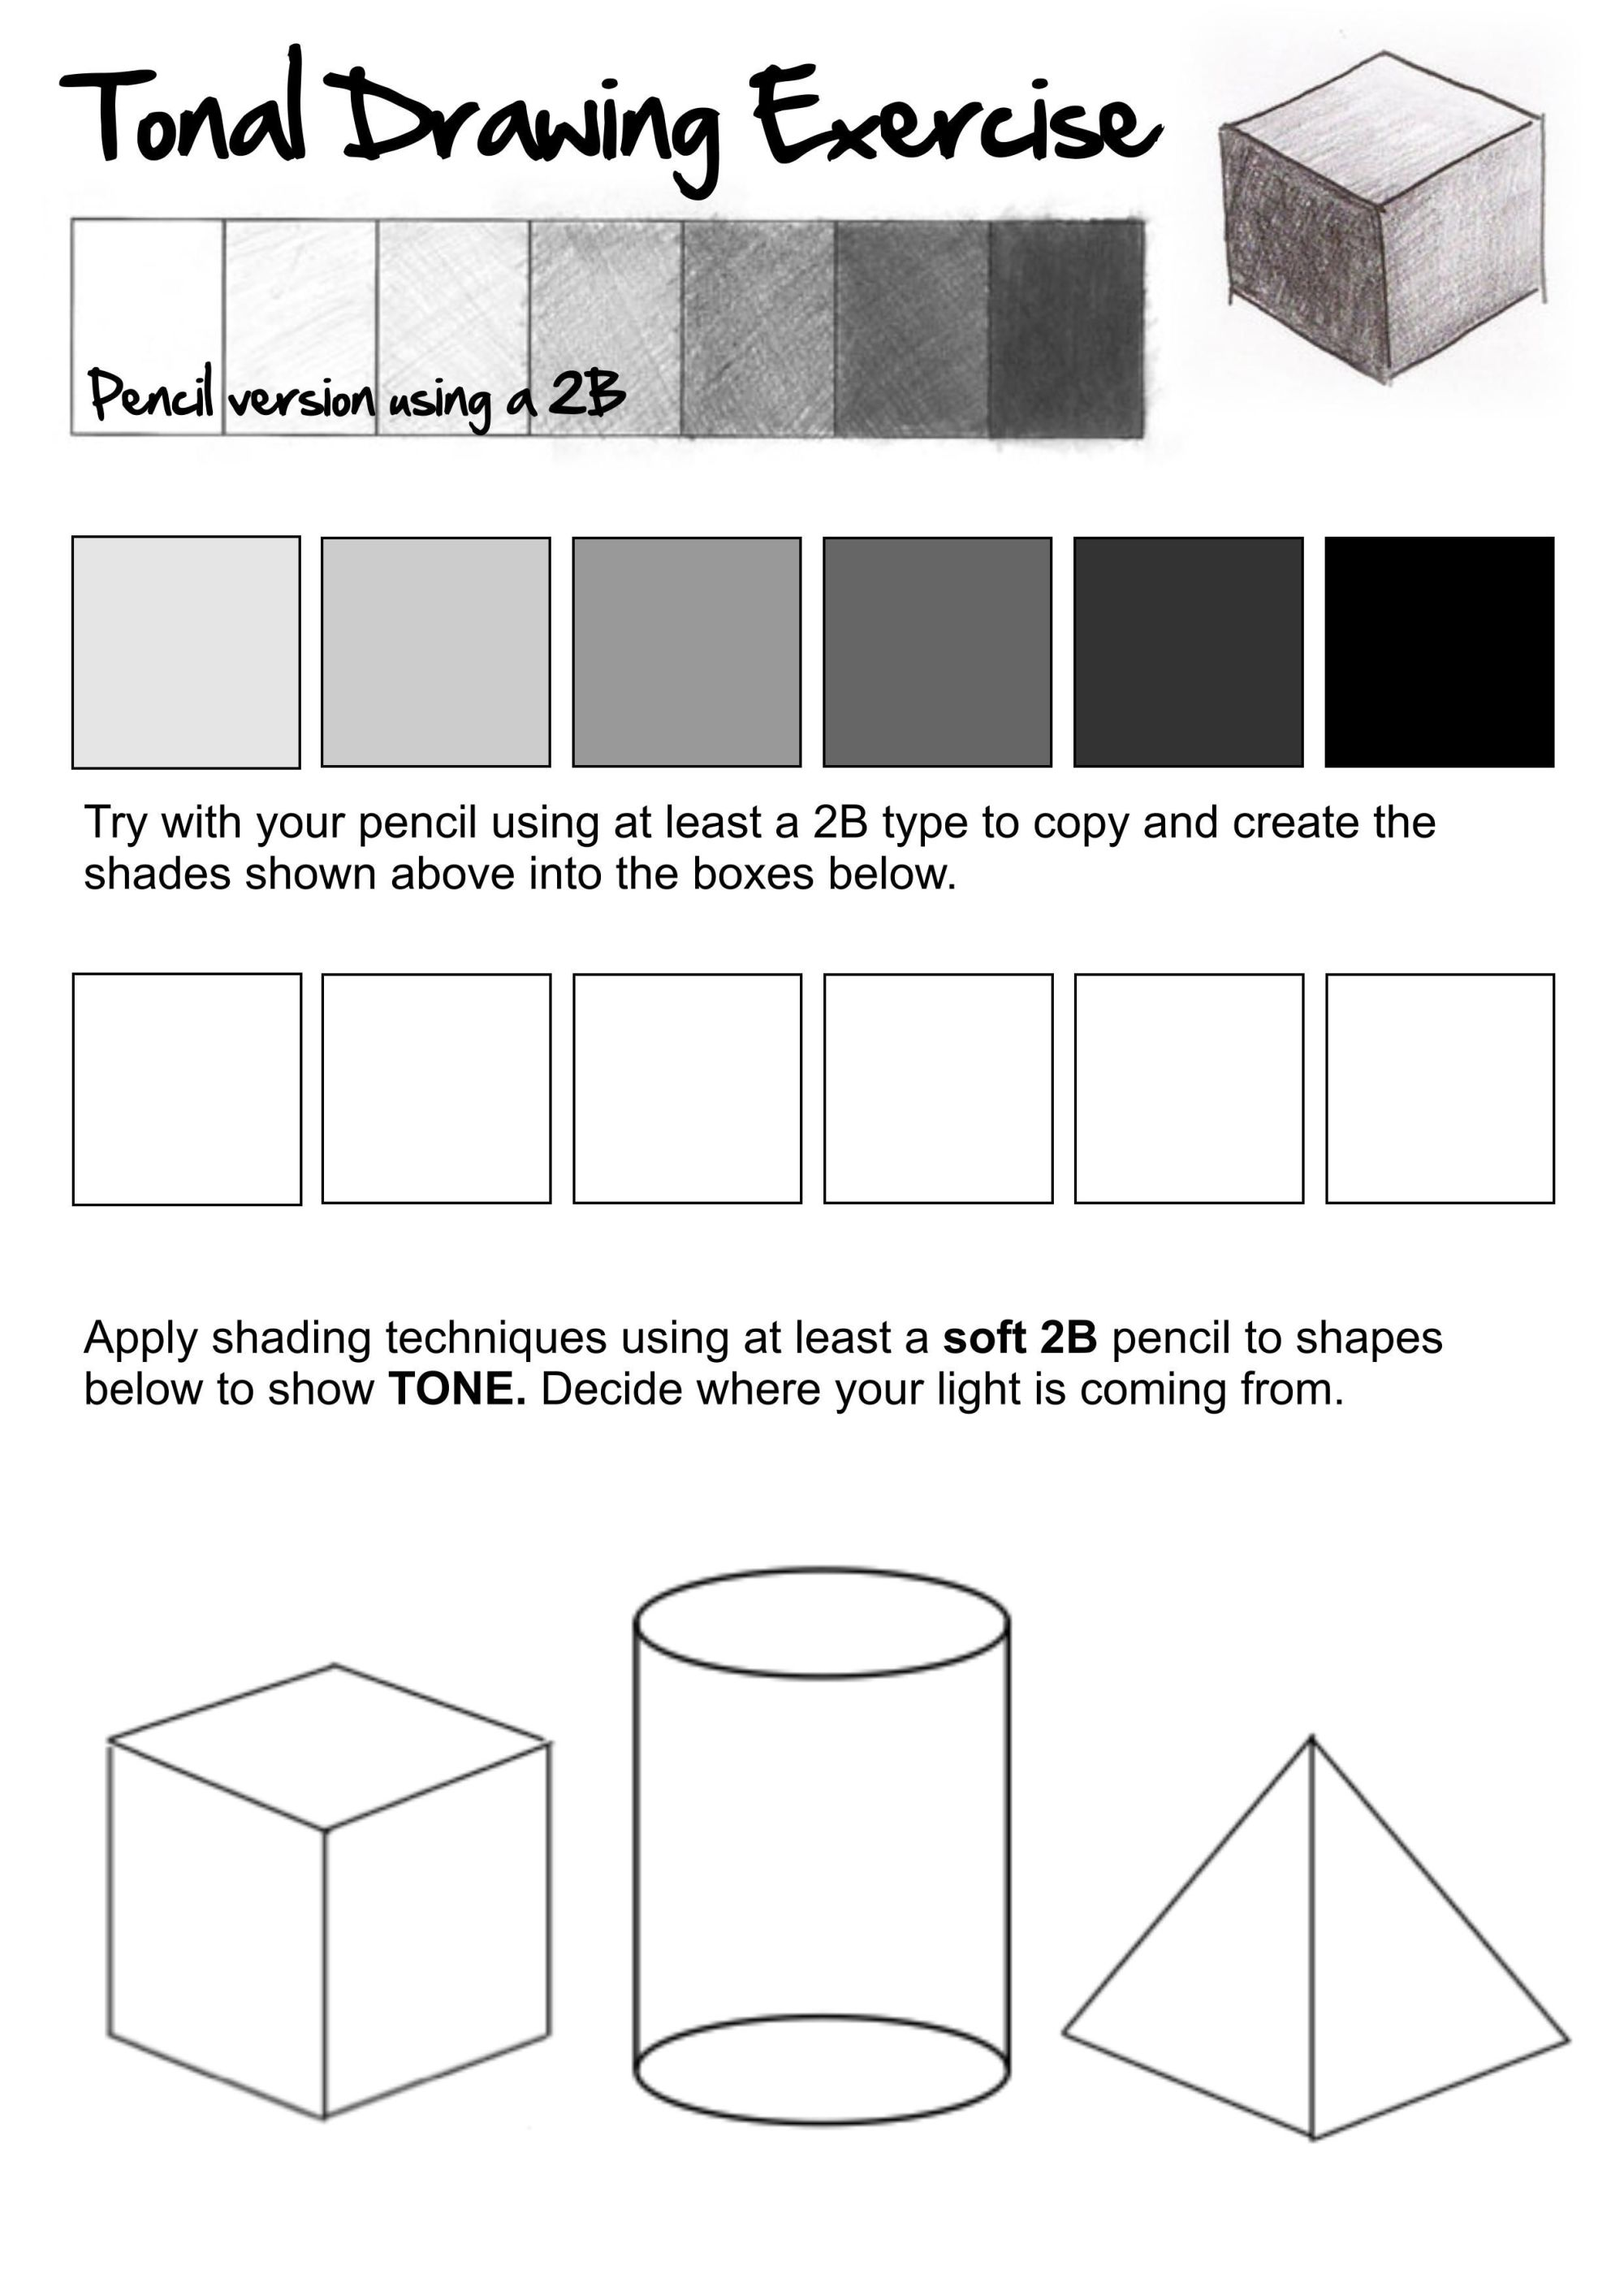 hight resolution of 5 Best Pencil Shading Techniques Worksheets images on Best Worksheets  Collection